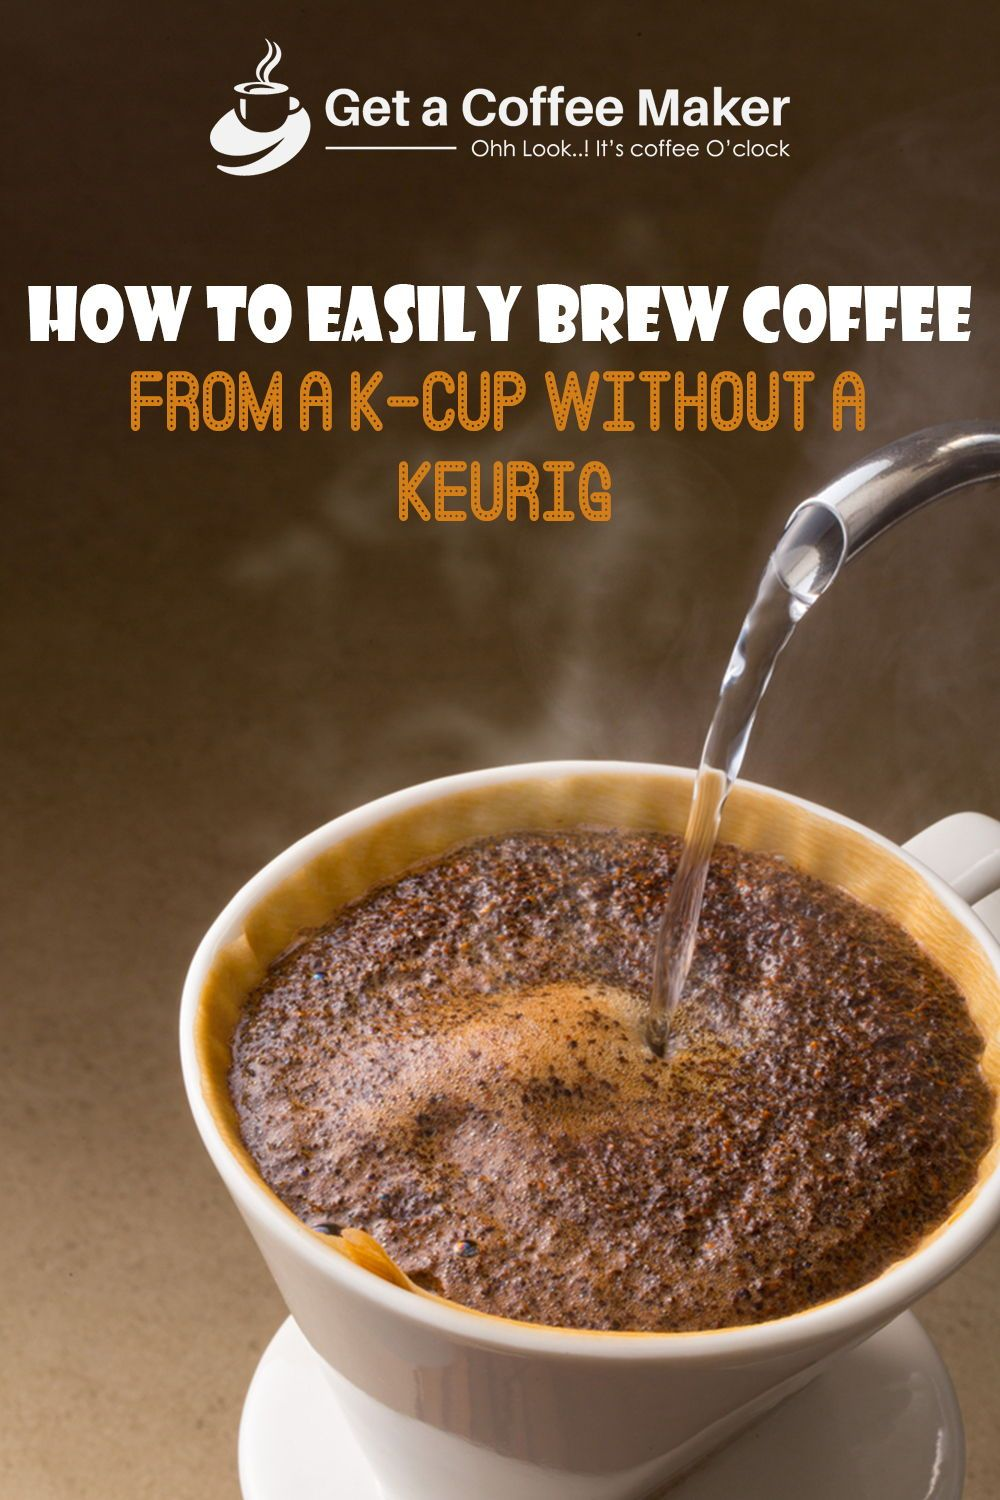 How Much Coffee Is In Ak Cup >> How To Easily Brew Coffee From A K Cup Without A Keurig How To